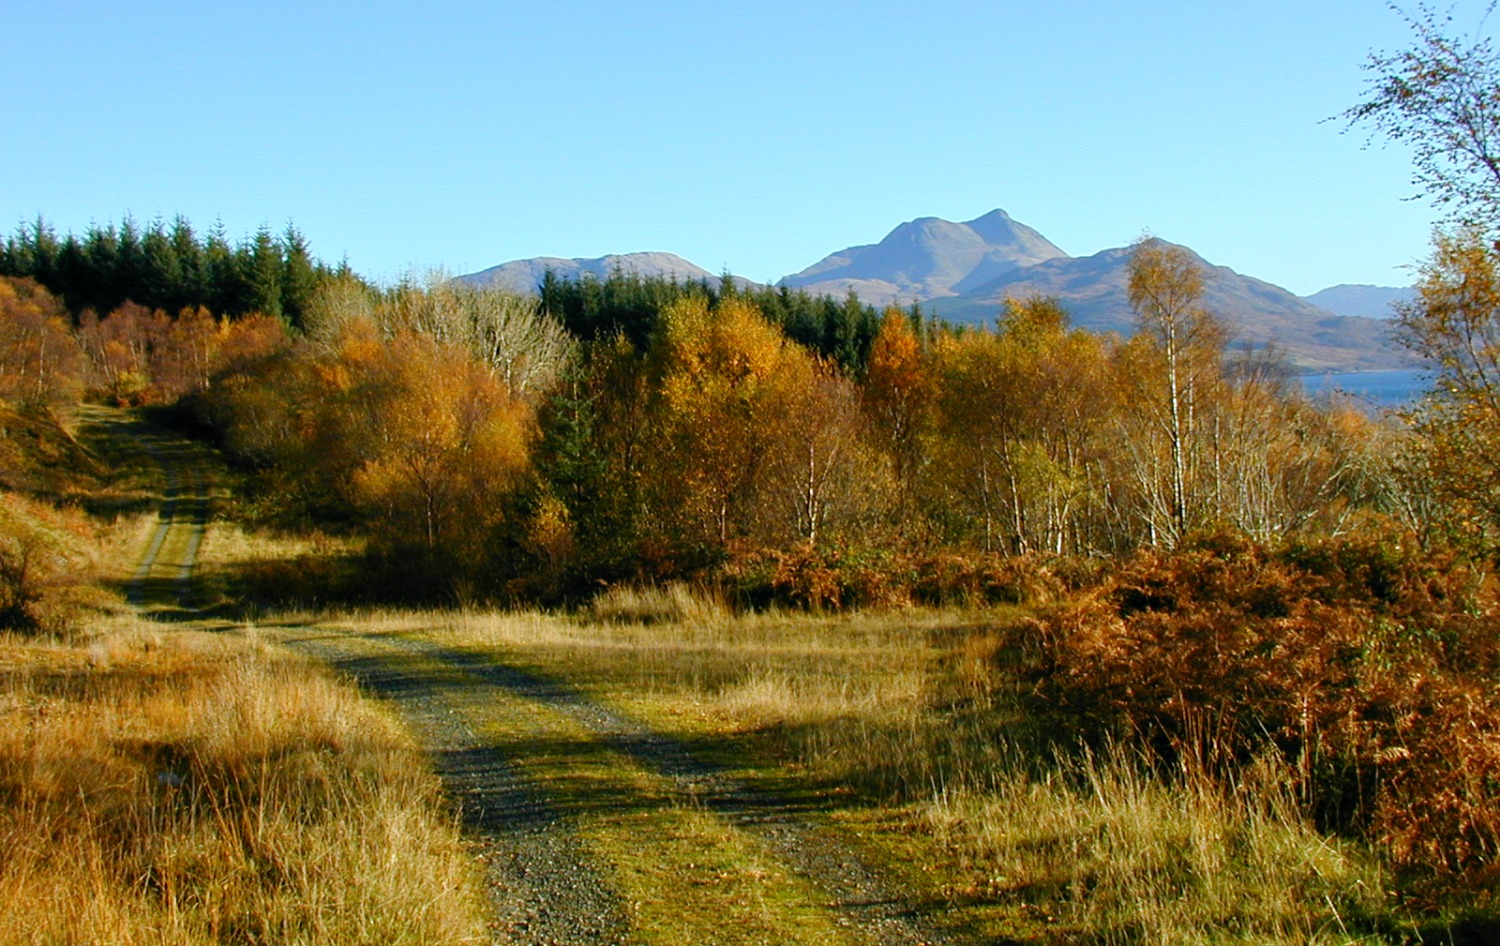 Autumn on Skye, looking east to the mainland.